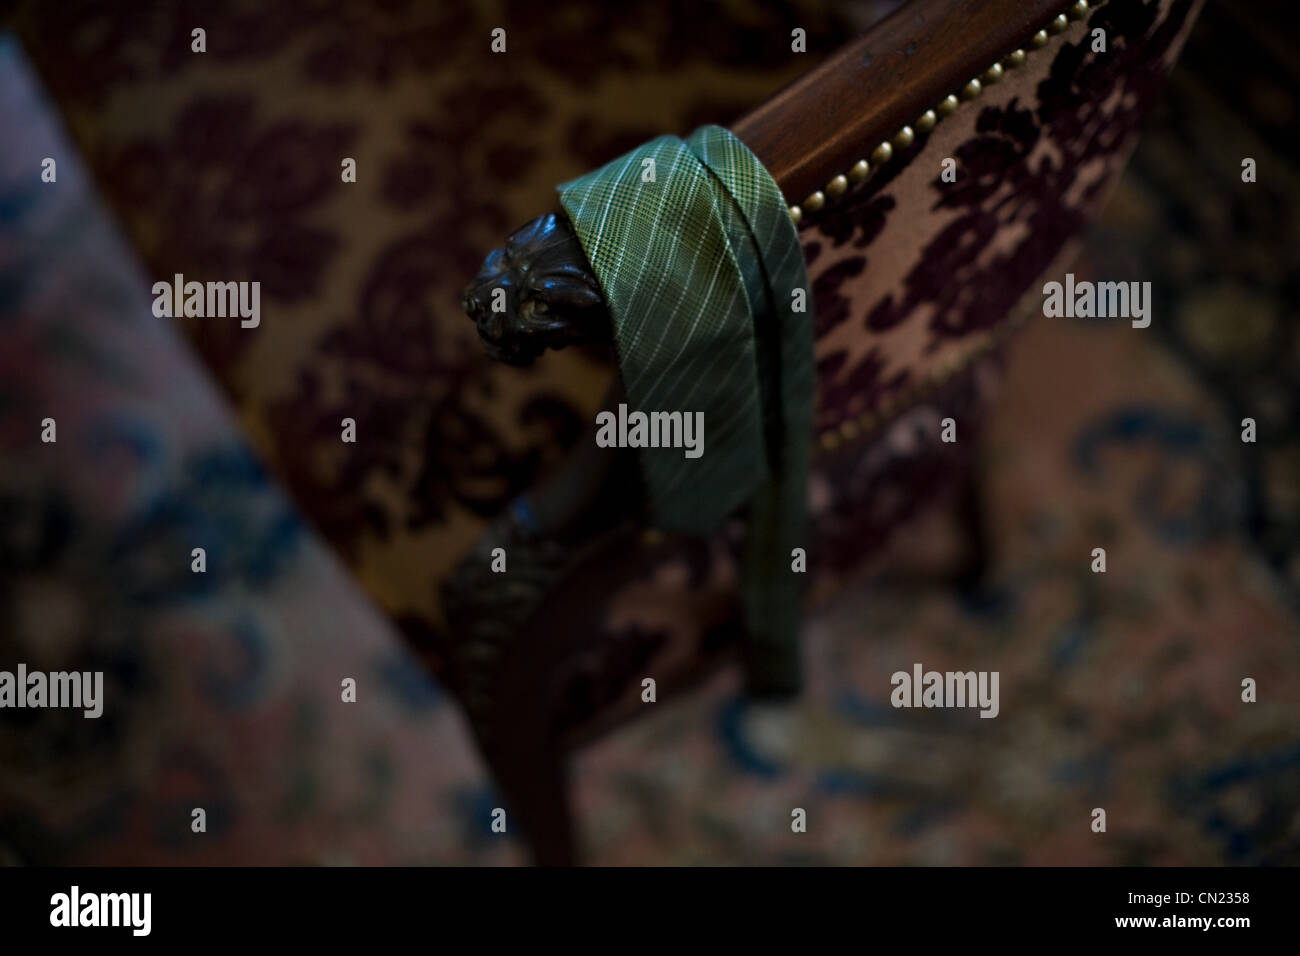 Tie draped over armchair - Stock Image